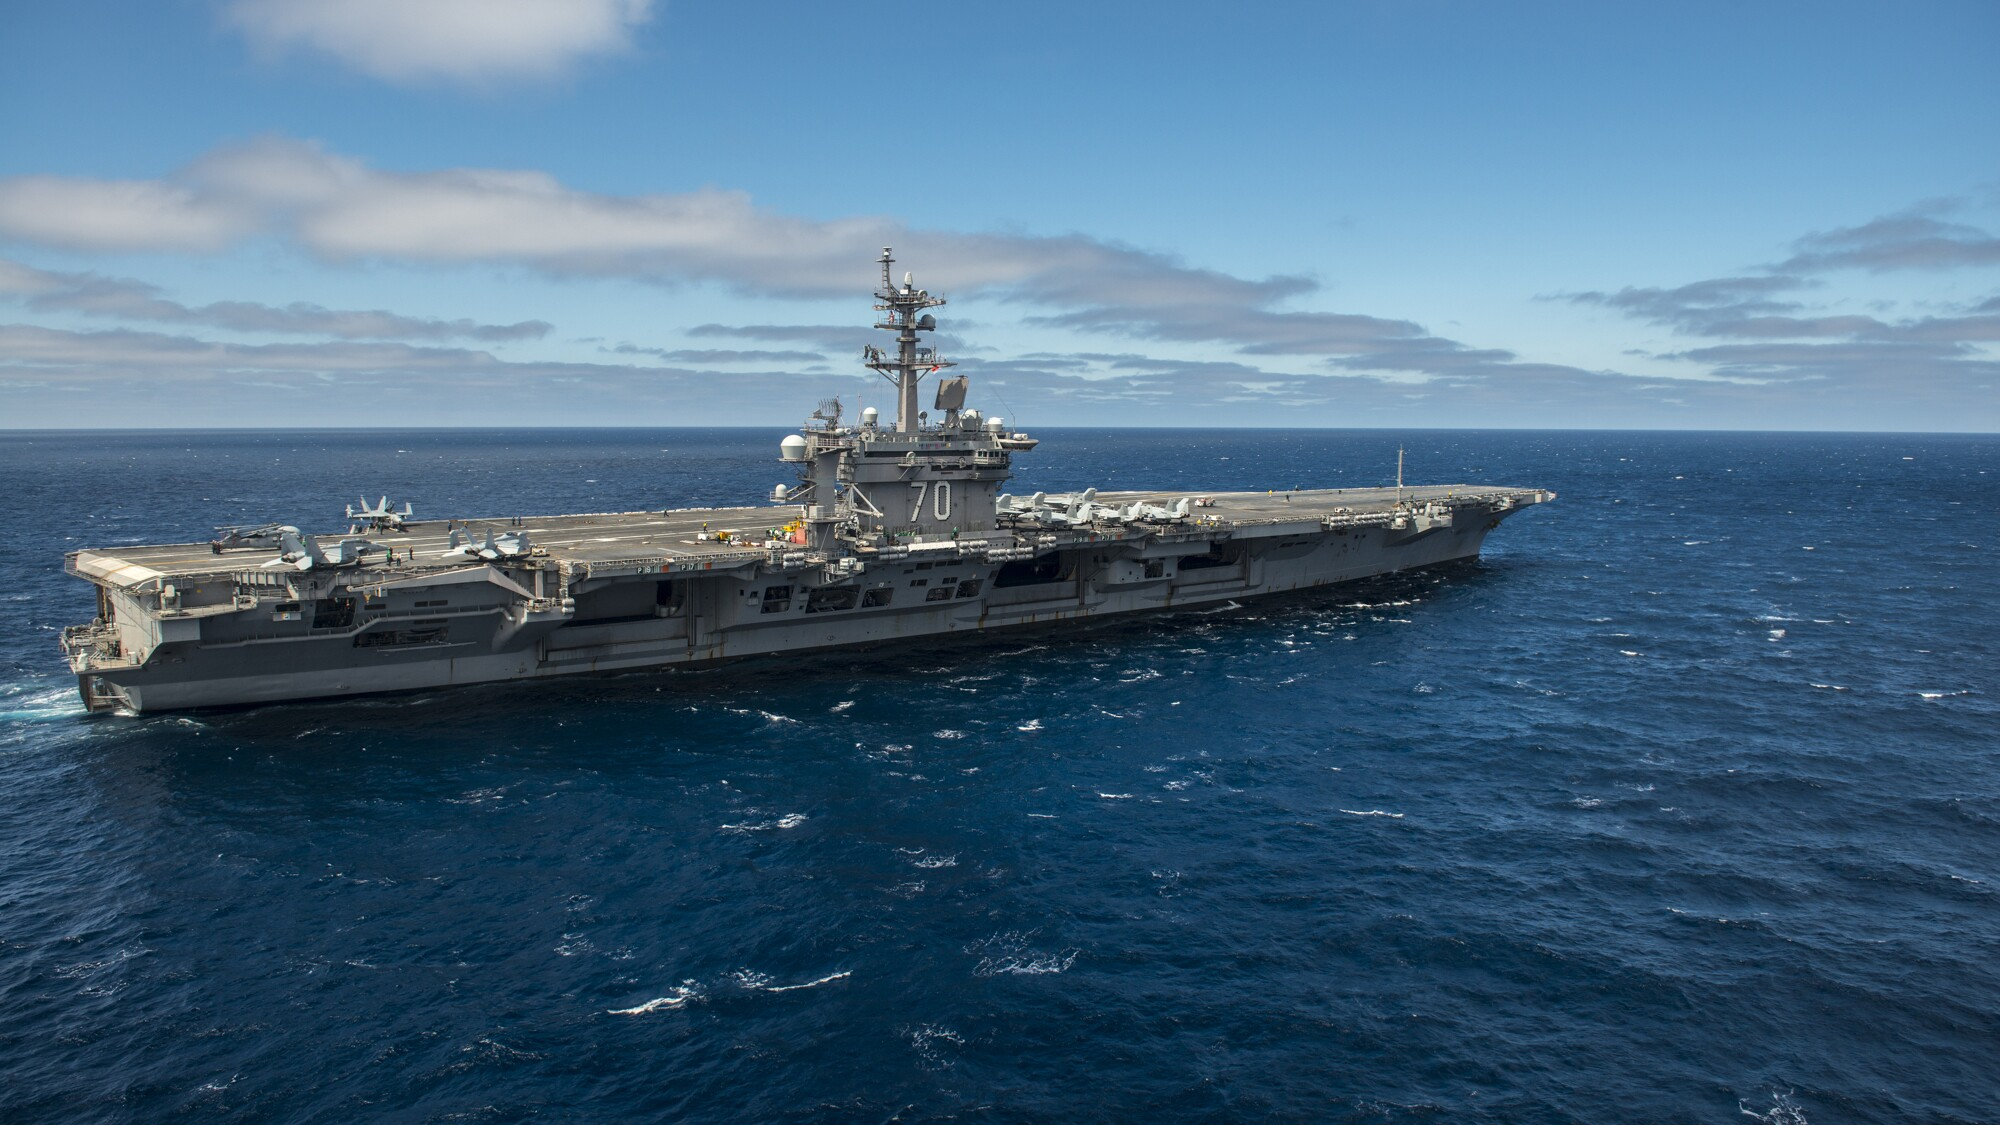 US deploys aircraft carrier after historic gap